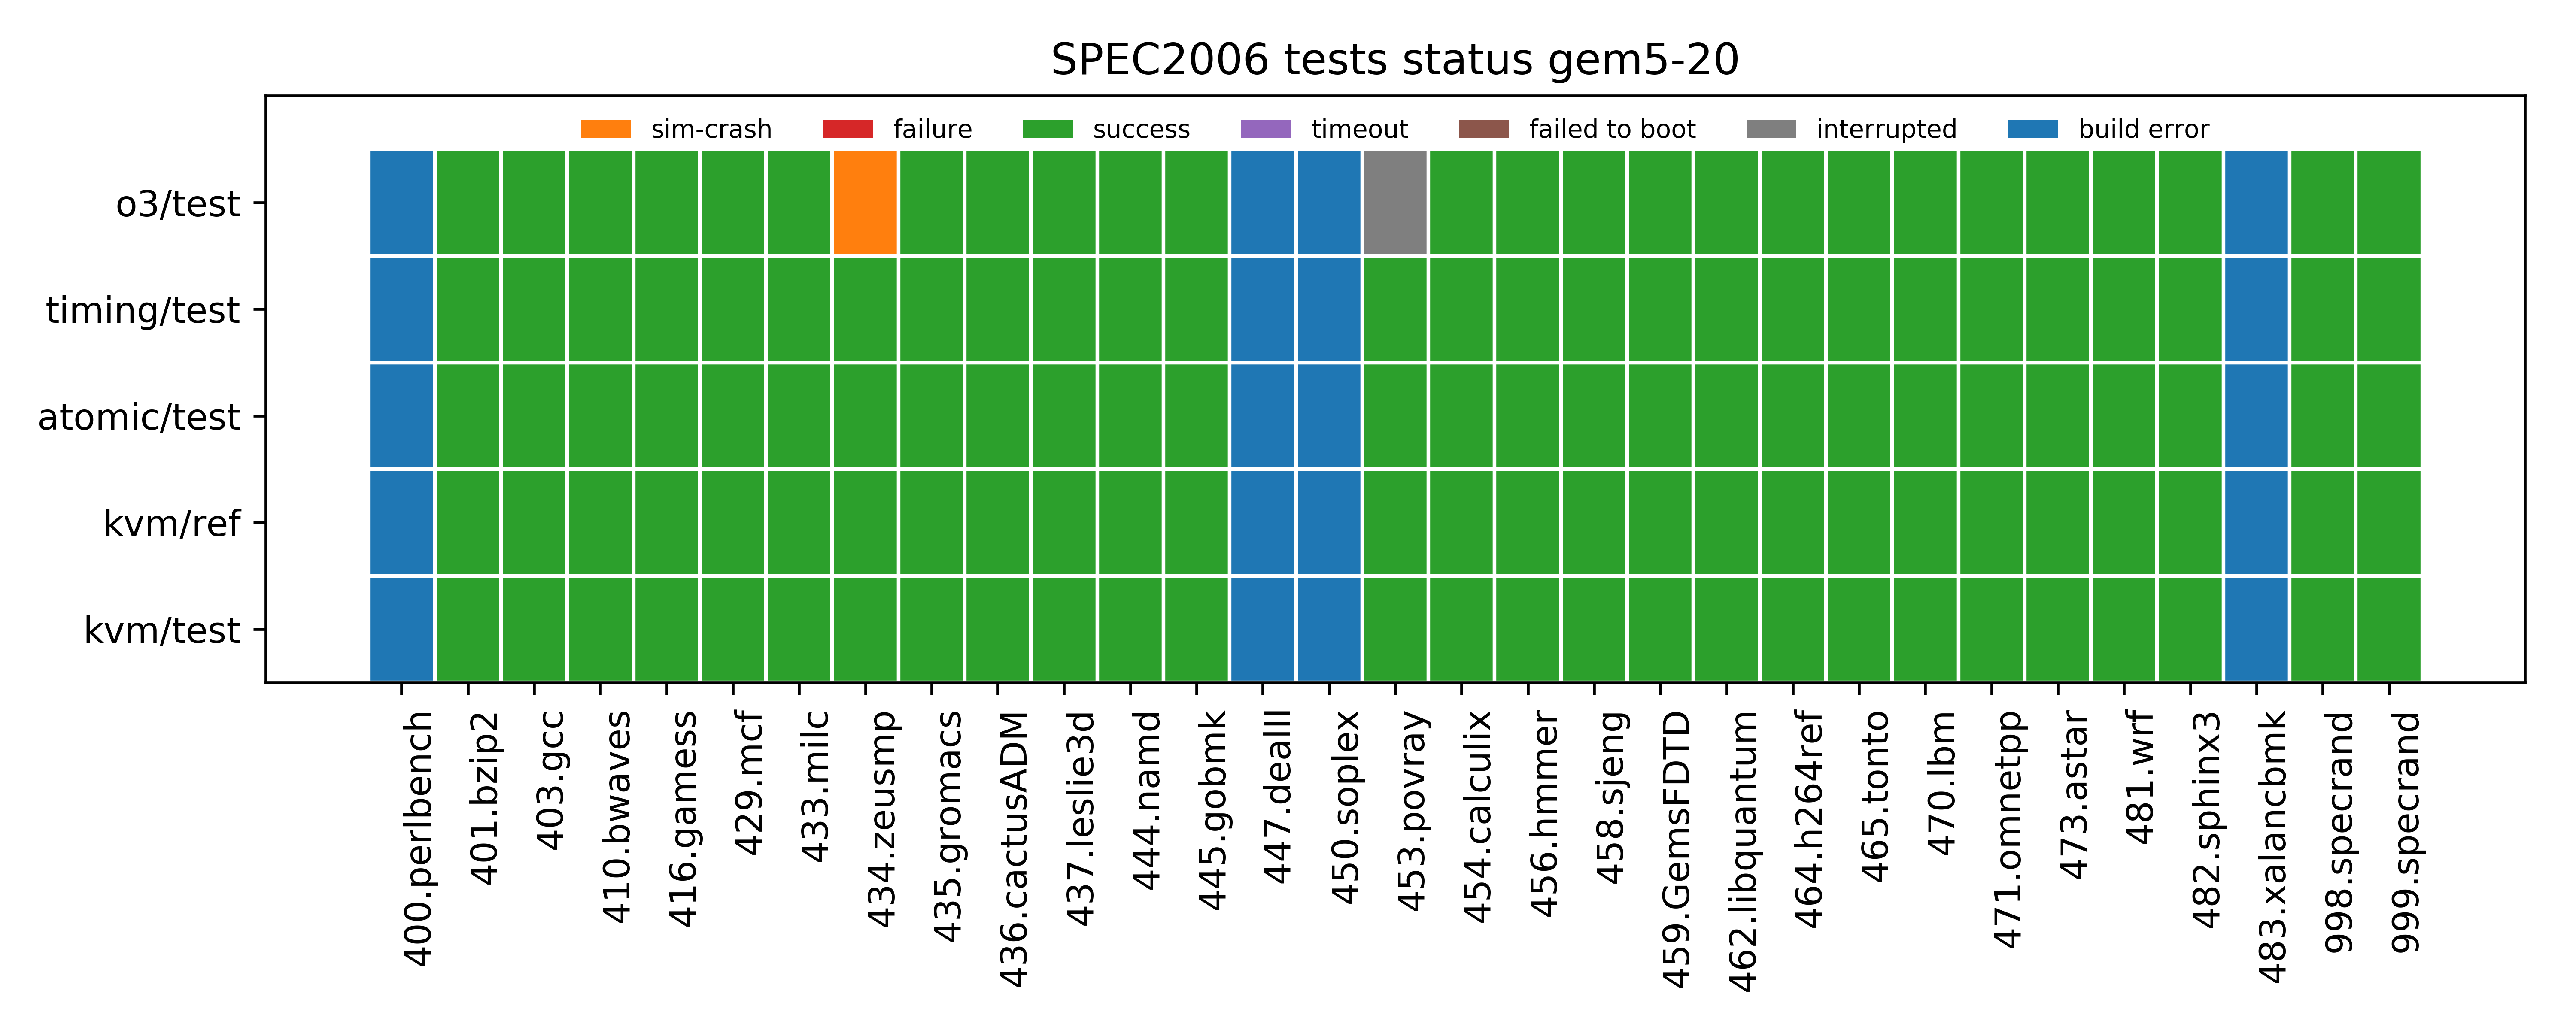 SPEC-2006 status for gem5-20